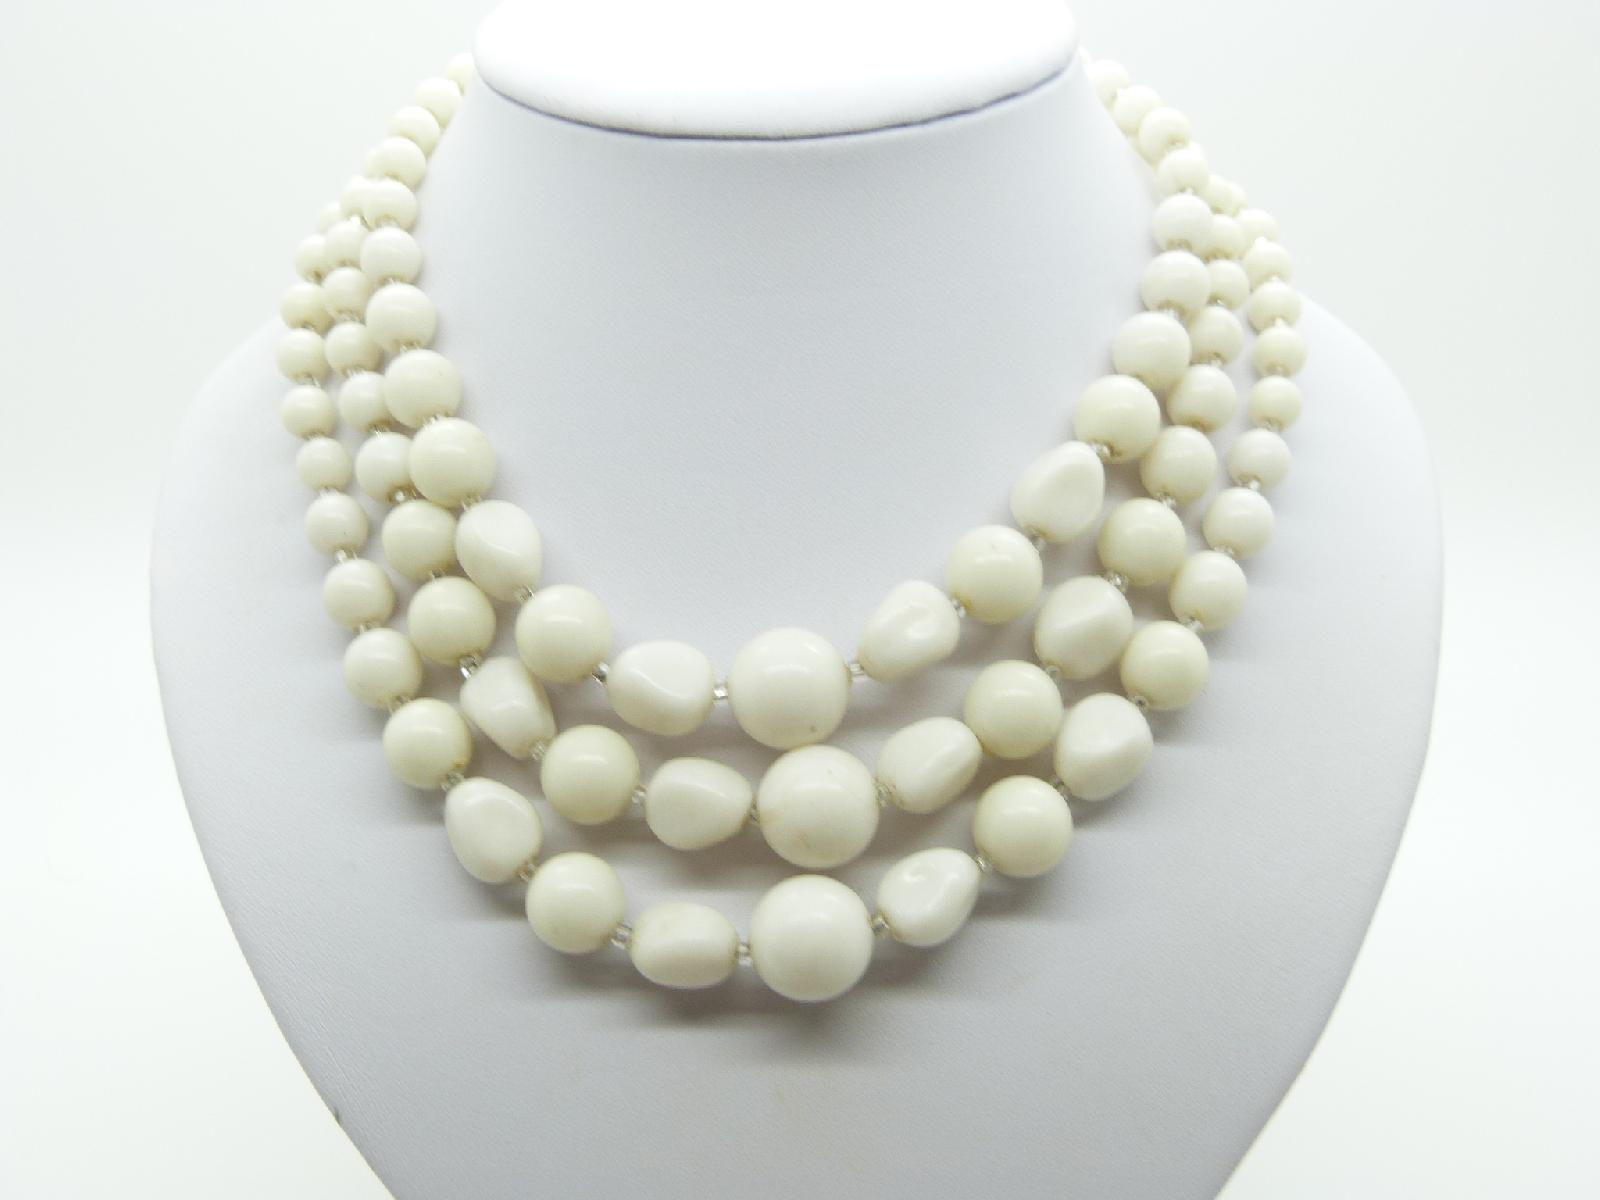 £12.00 - Vintage 50s Three Row Pretty White Plastic Bead Necklace Unusual Shape